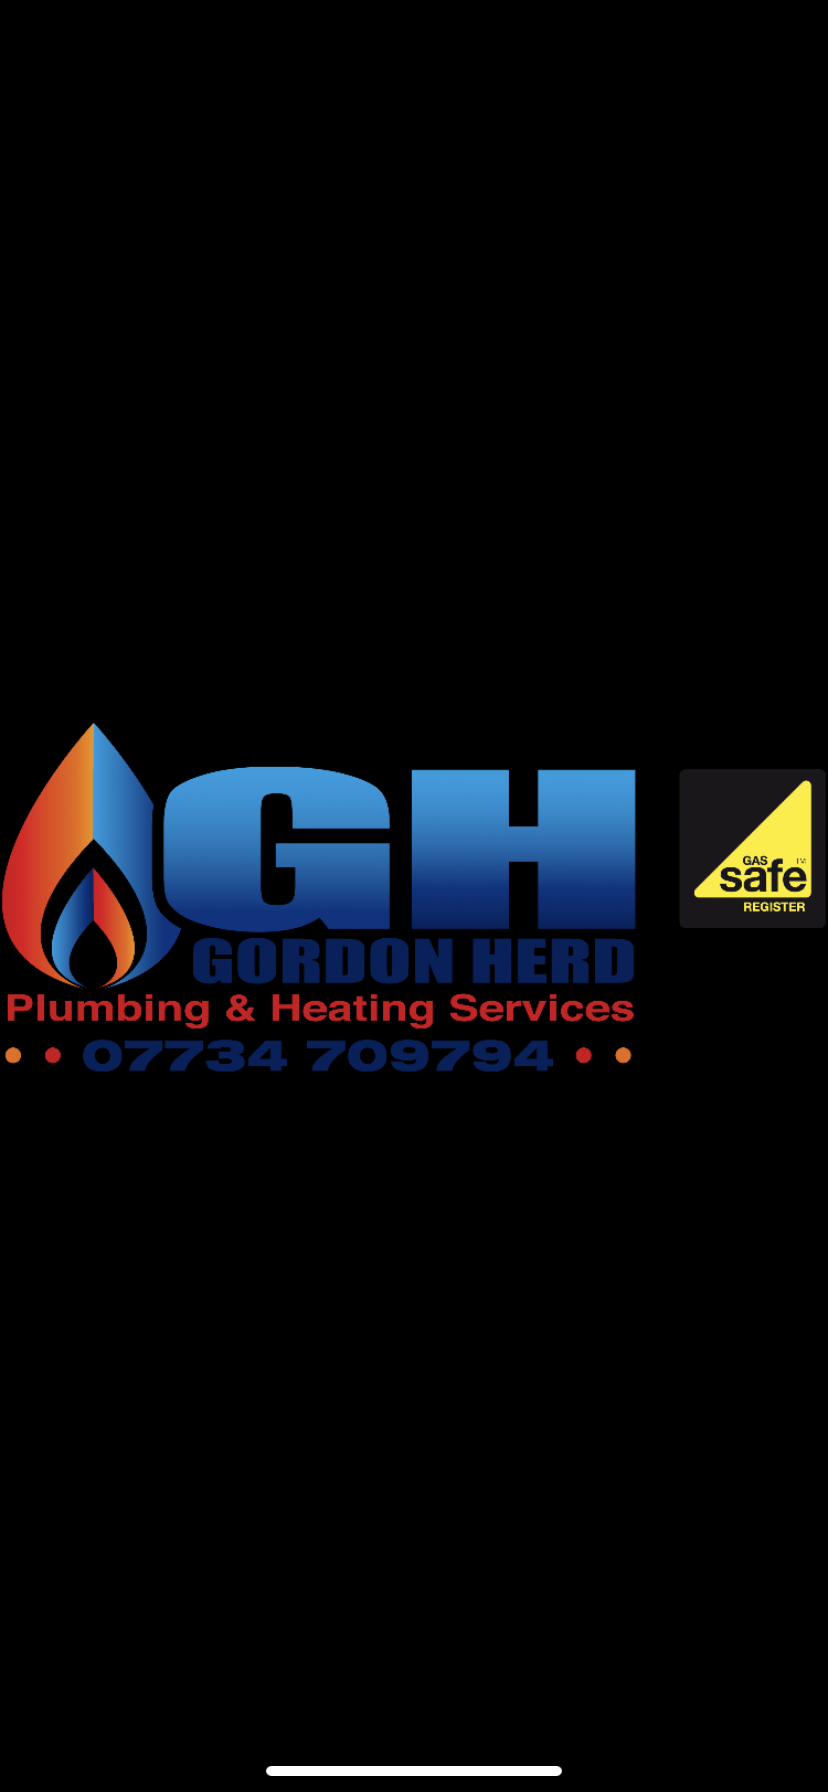 Gordon Herd Plumbing & Heating Services Verified Logo